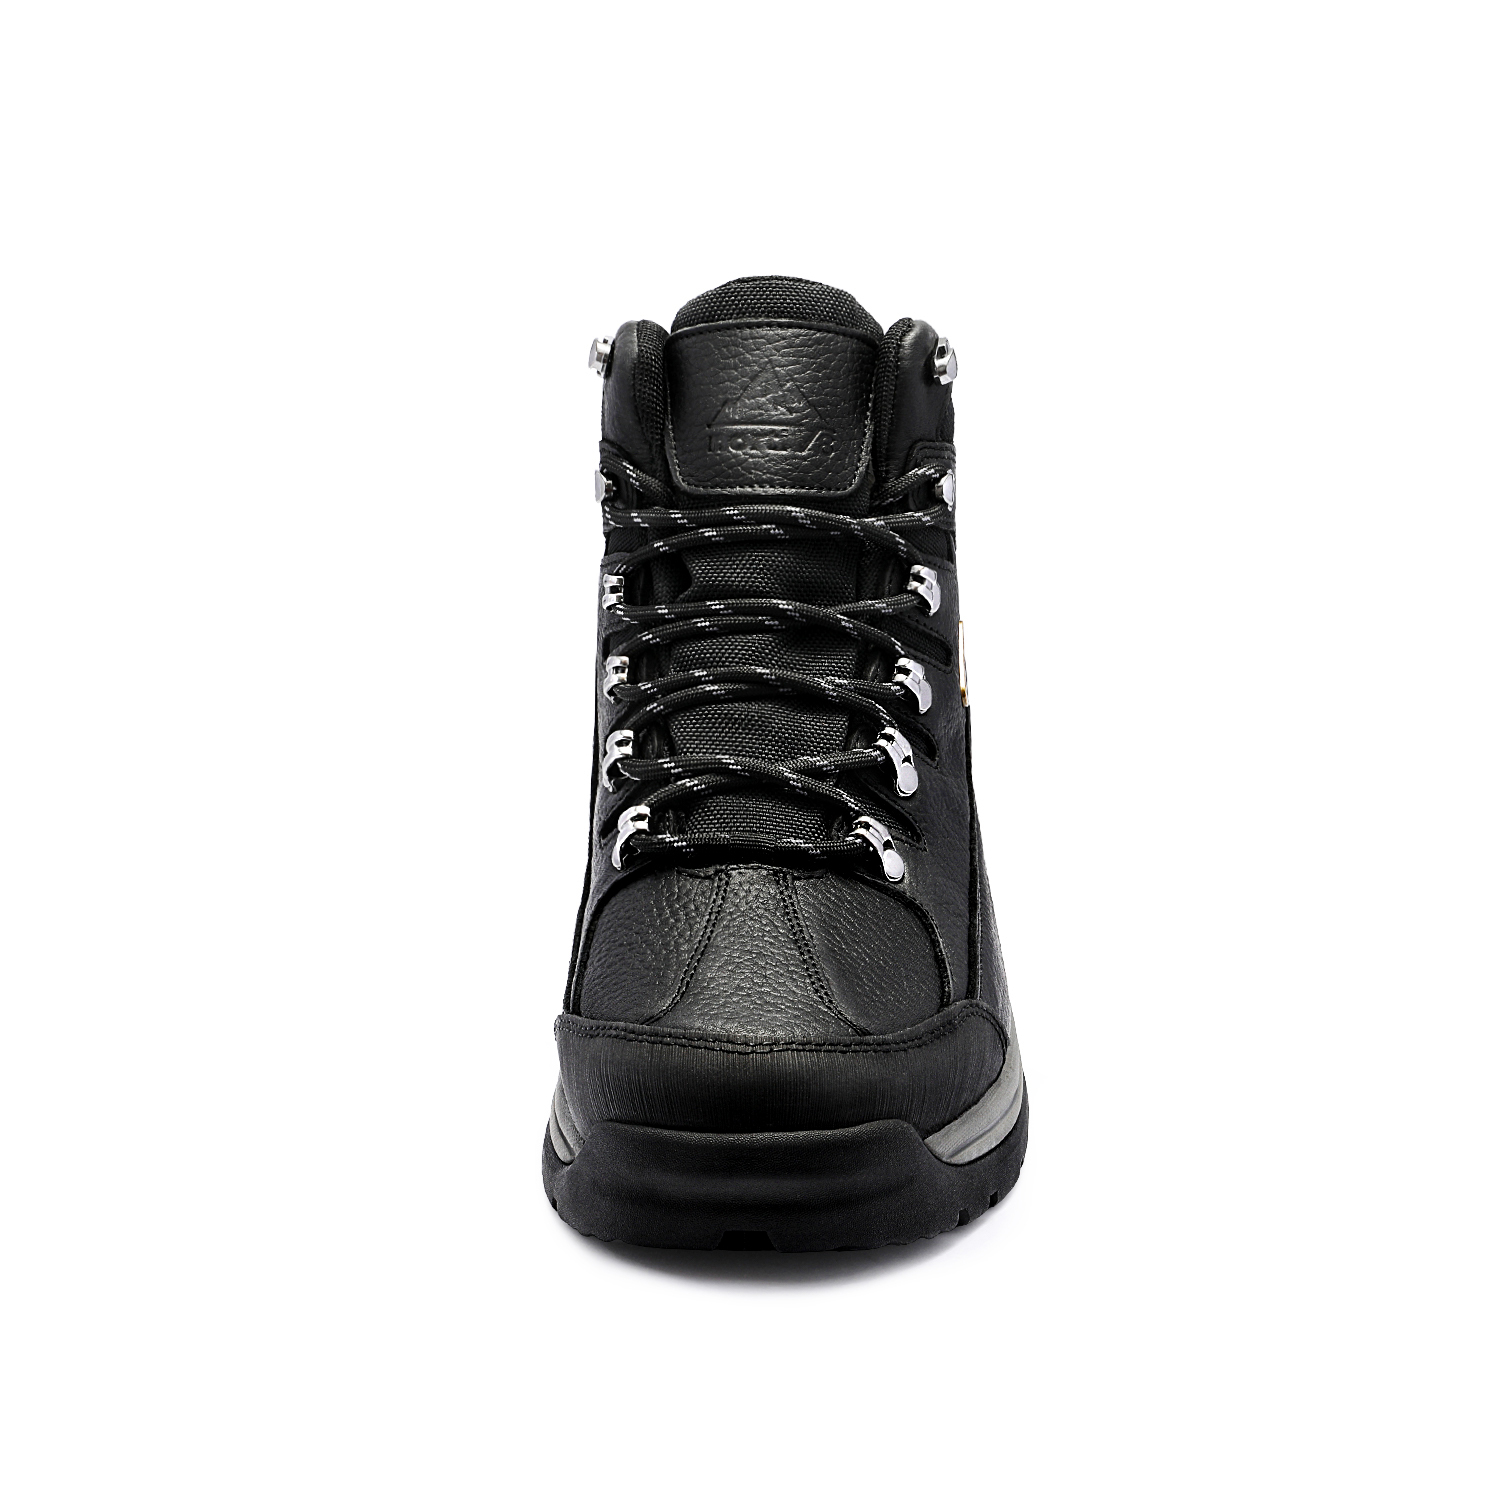 NORTIV-8-Men-039-s-Safety-Shoes-Steel-Toe-Work-Boots-Indestructible-Waterproof-Boots thumbnail 5